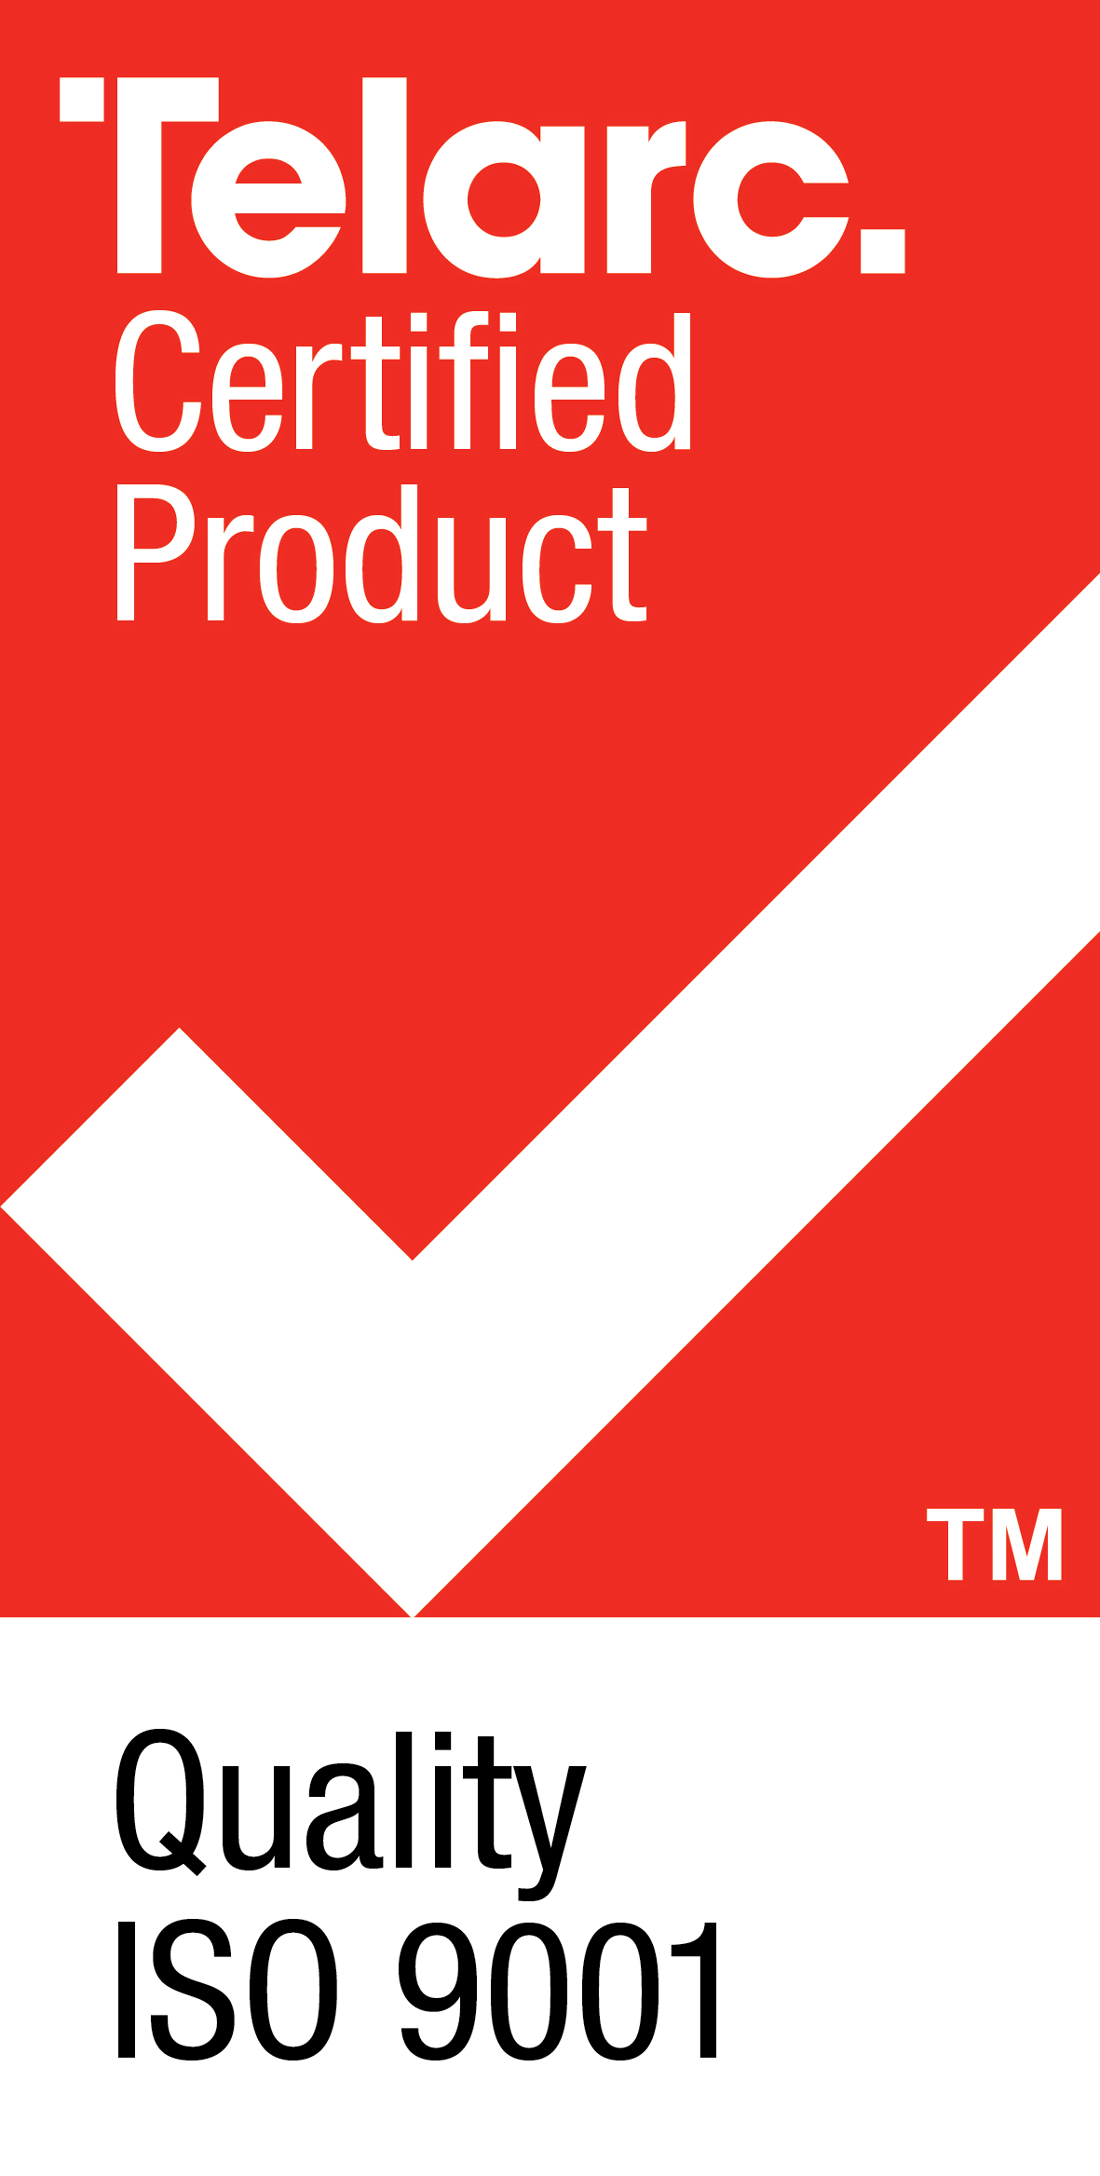 Telarc-Certified-Marks_QUALITY-ISO-9001